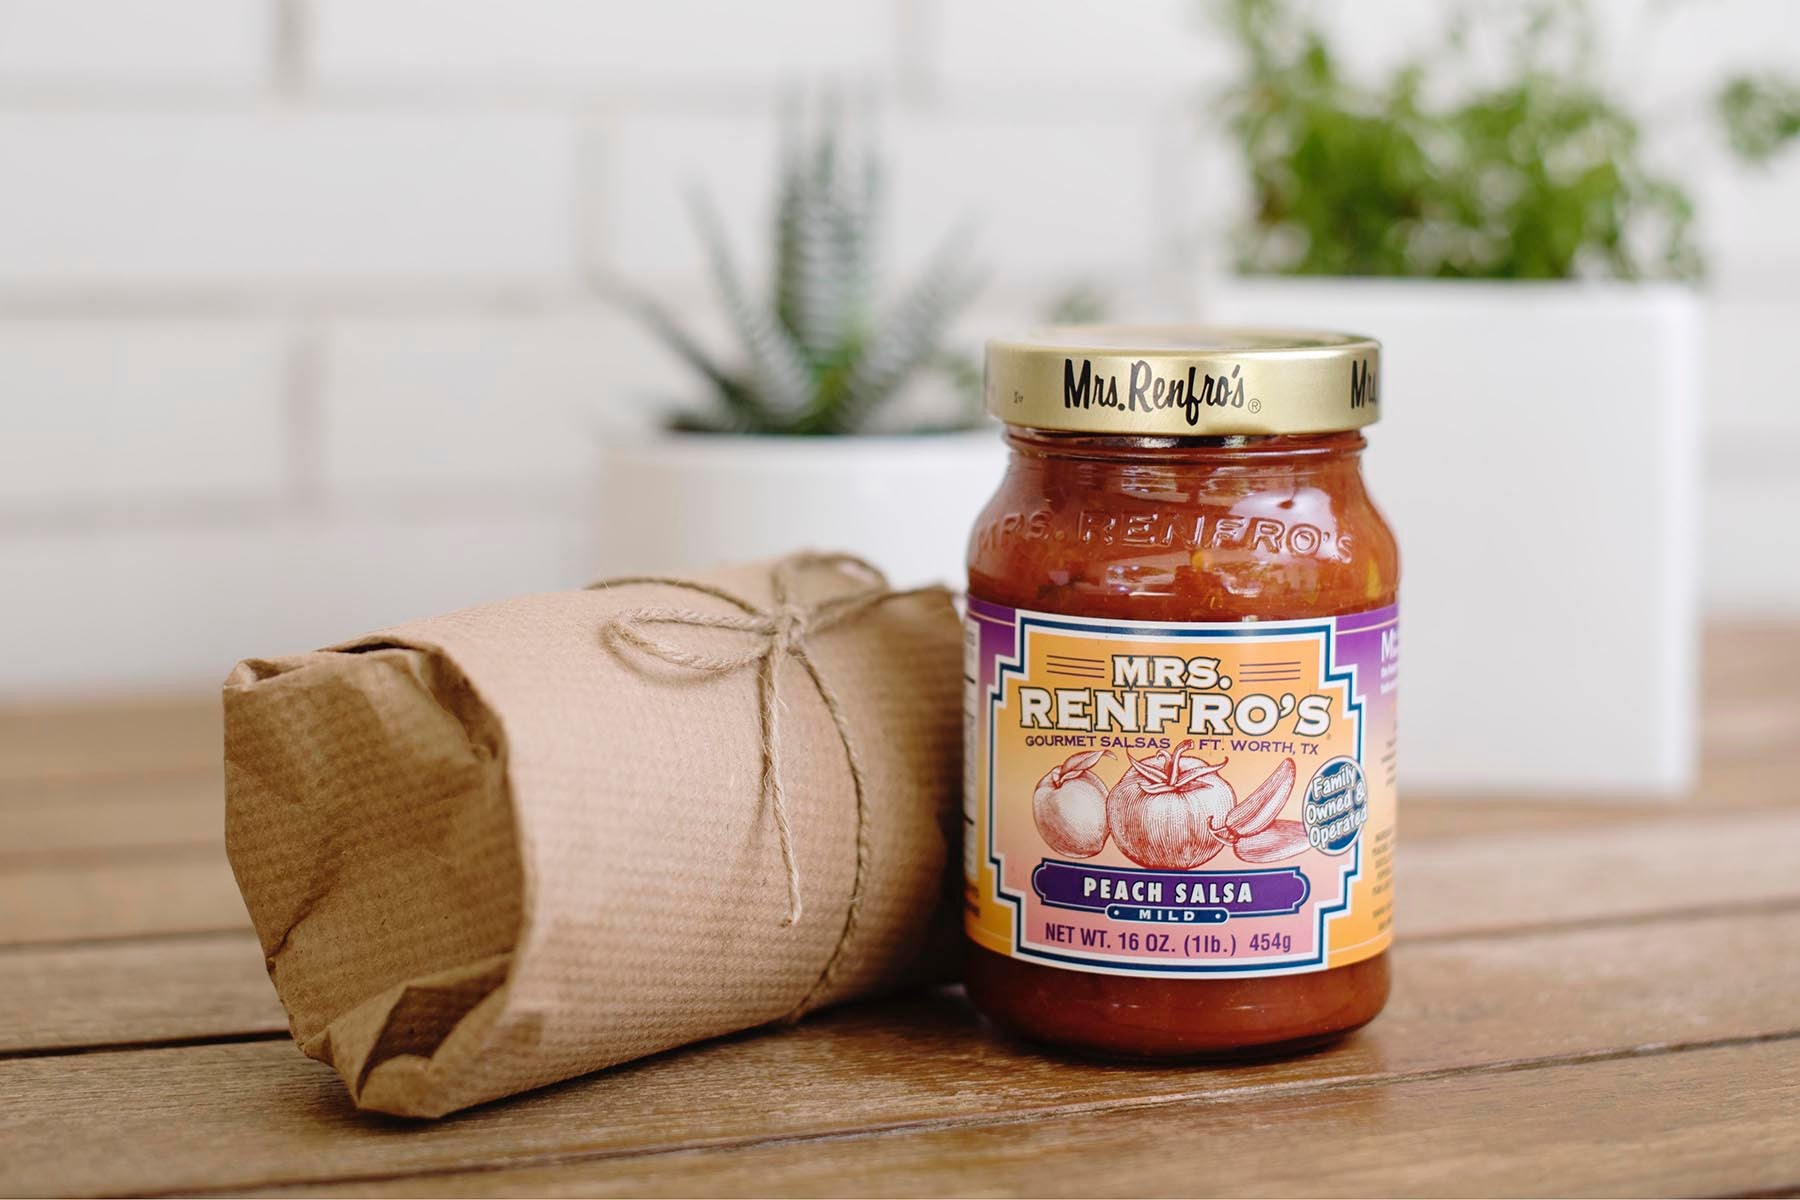 <b>Mrs. Renfro's Peach Salsa</b><br>Third Generation family business founded 76 years ago in Fort Worth, TX. Refreshingly smooth, their peach salsa is a real palate pleaser!